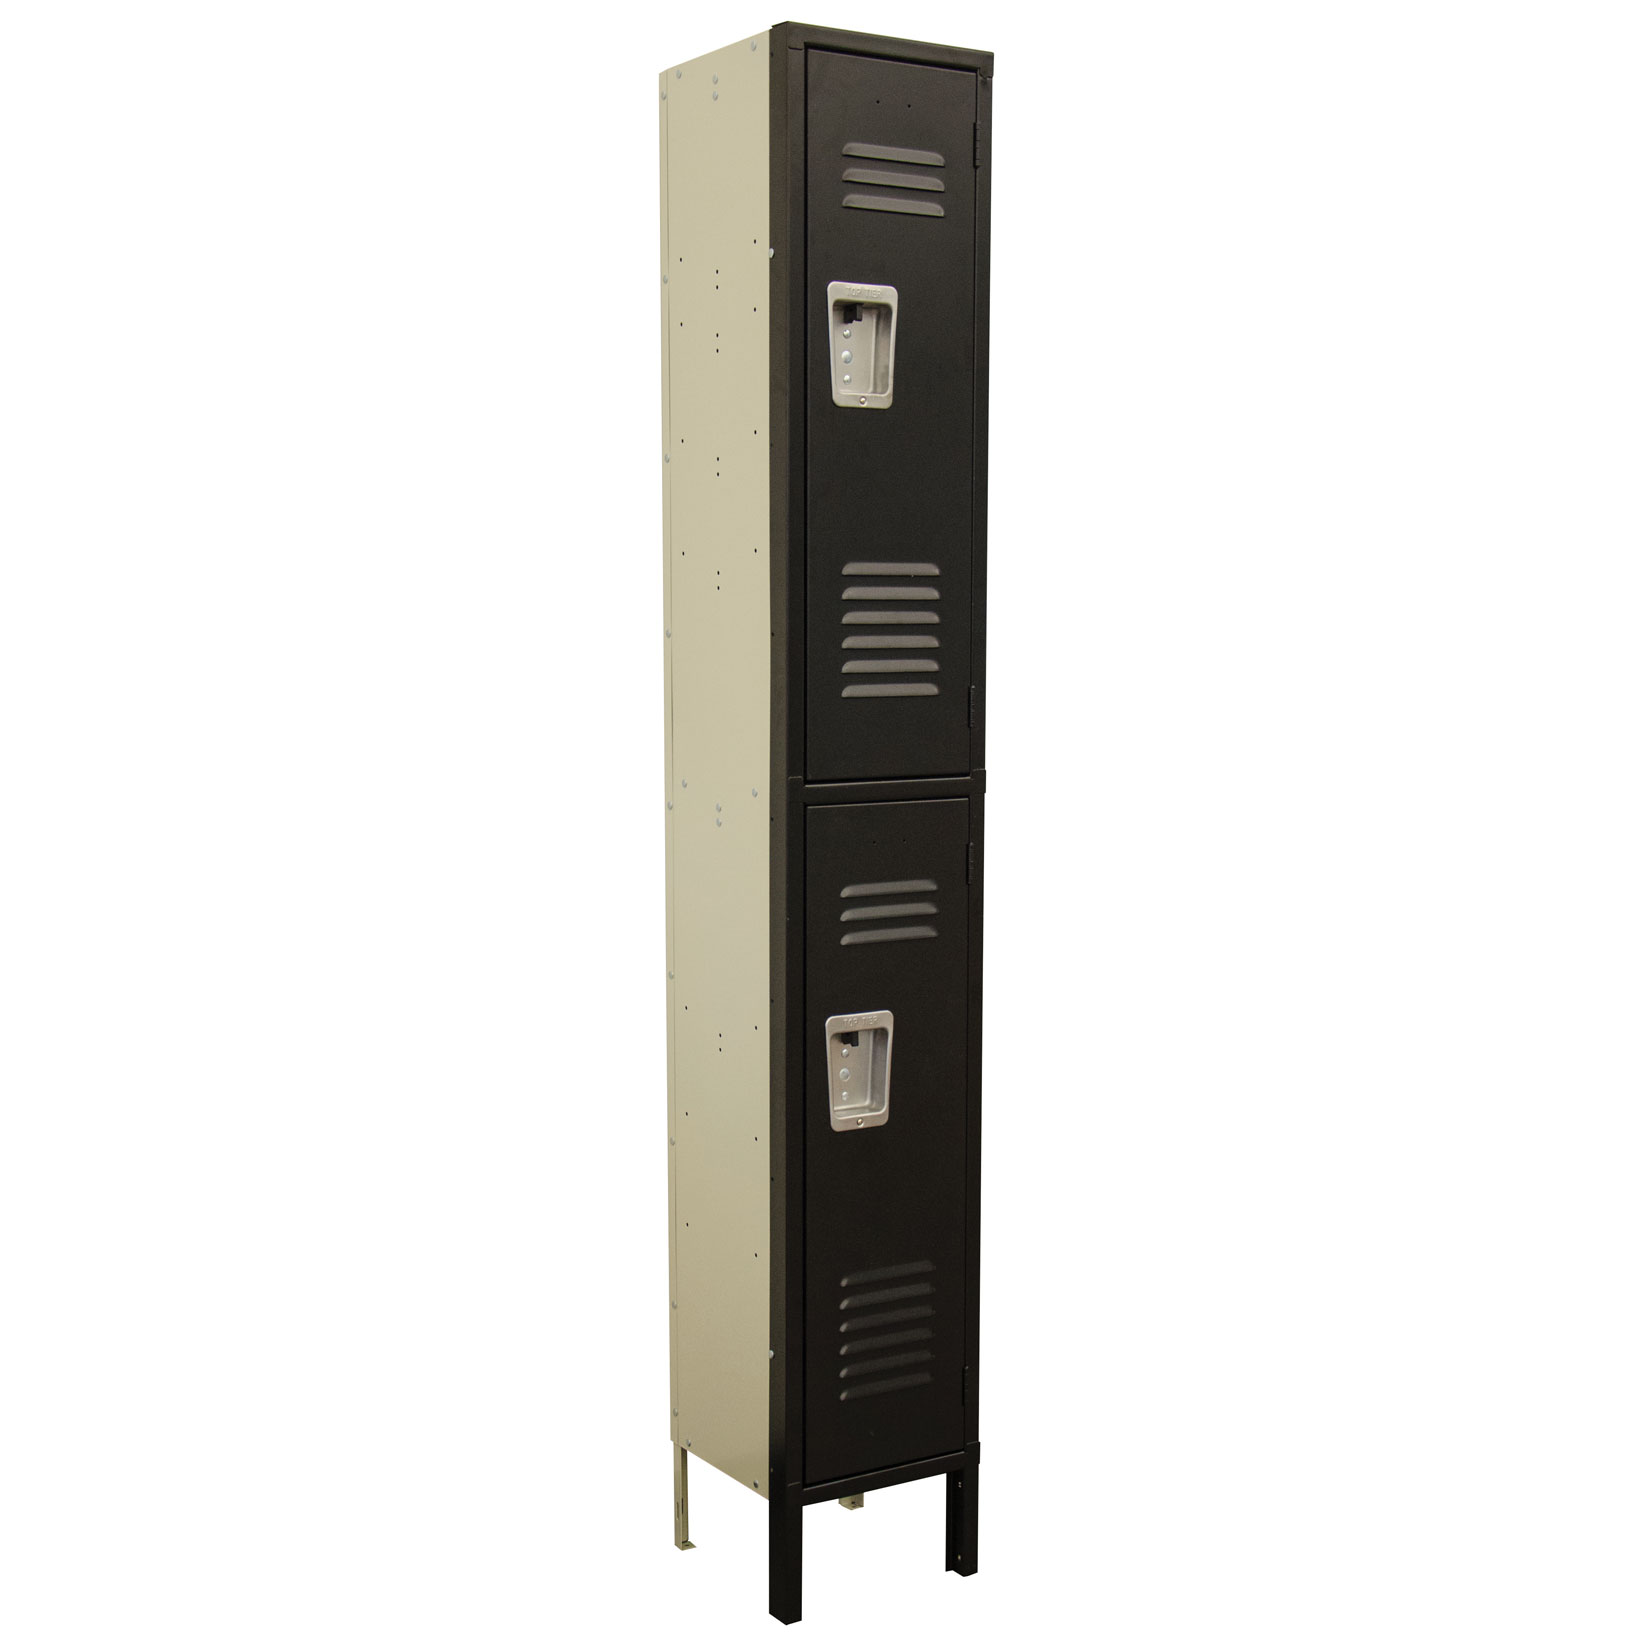 2 Tier 1-Wide Locker